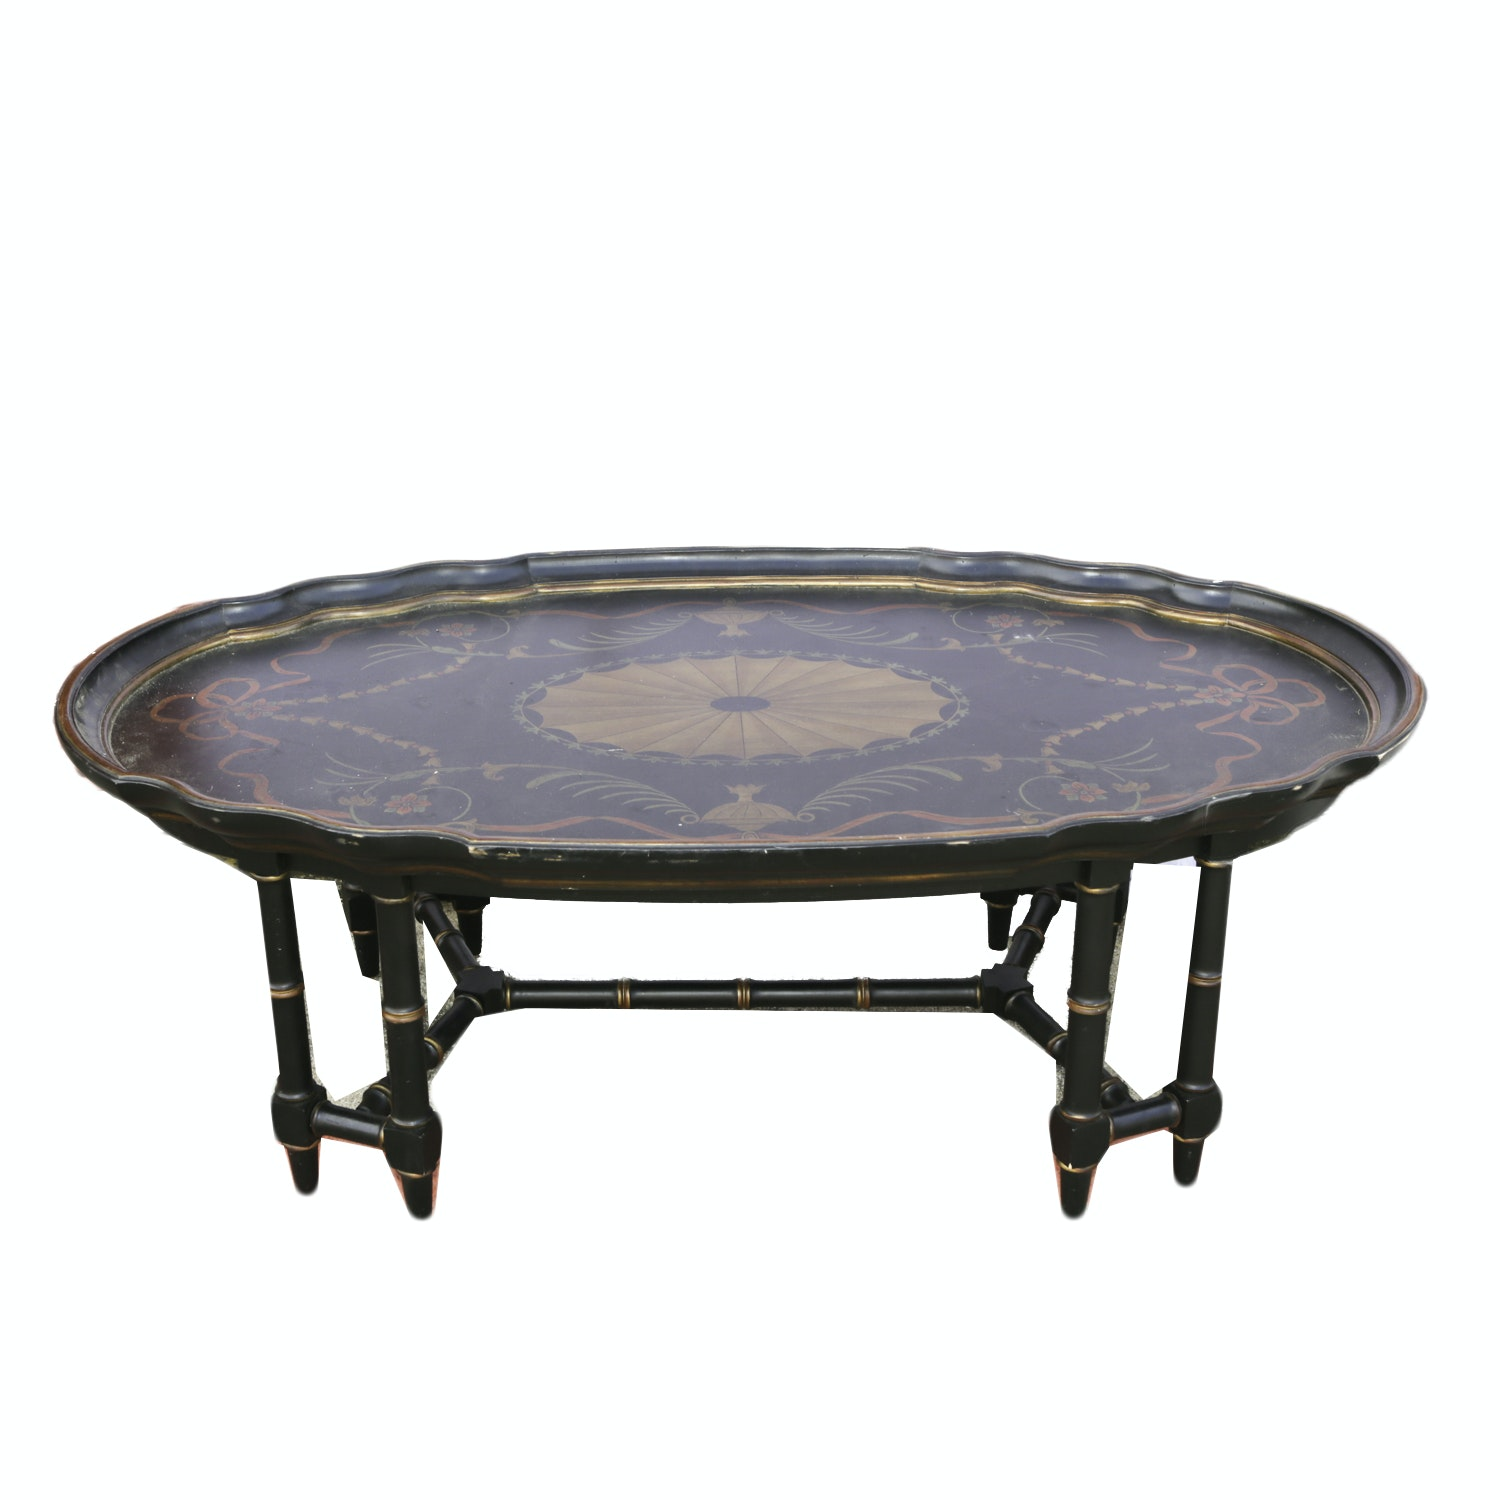 Decorative Painted Tray Coffee Table